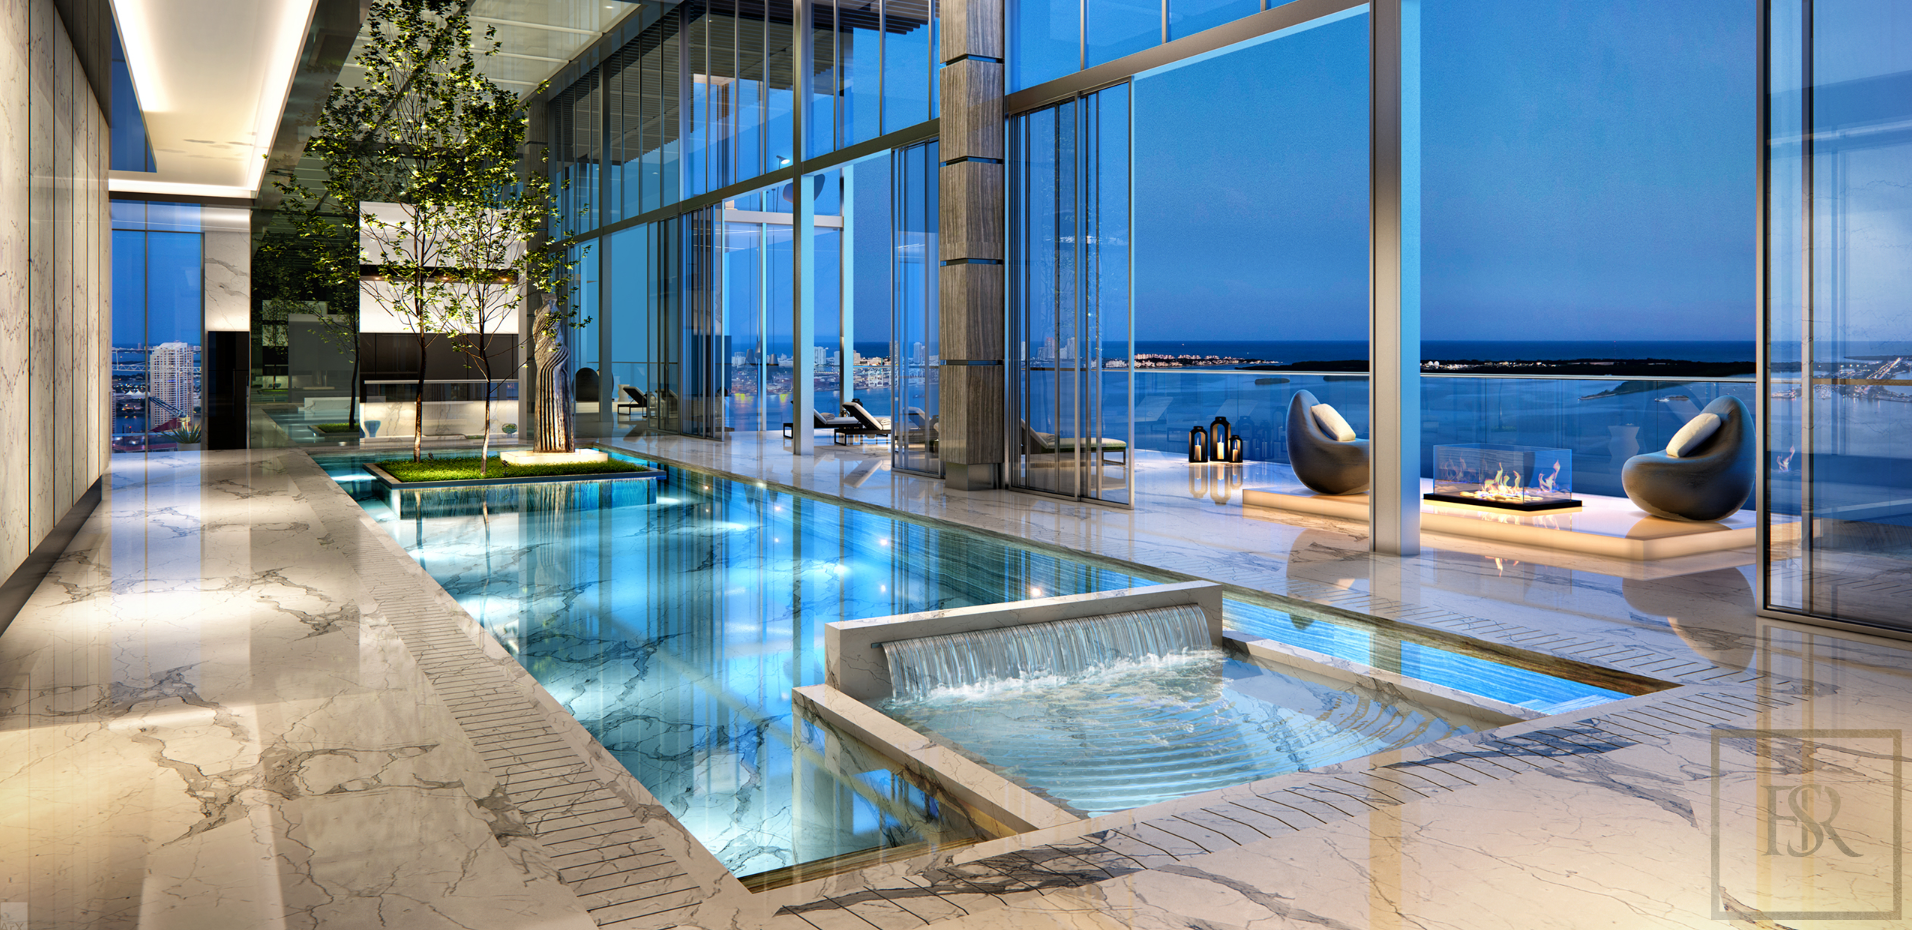 2019 Penthouse THE CARLOS OTT - Miami, USA for sale For Super Rich